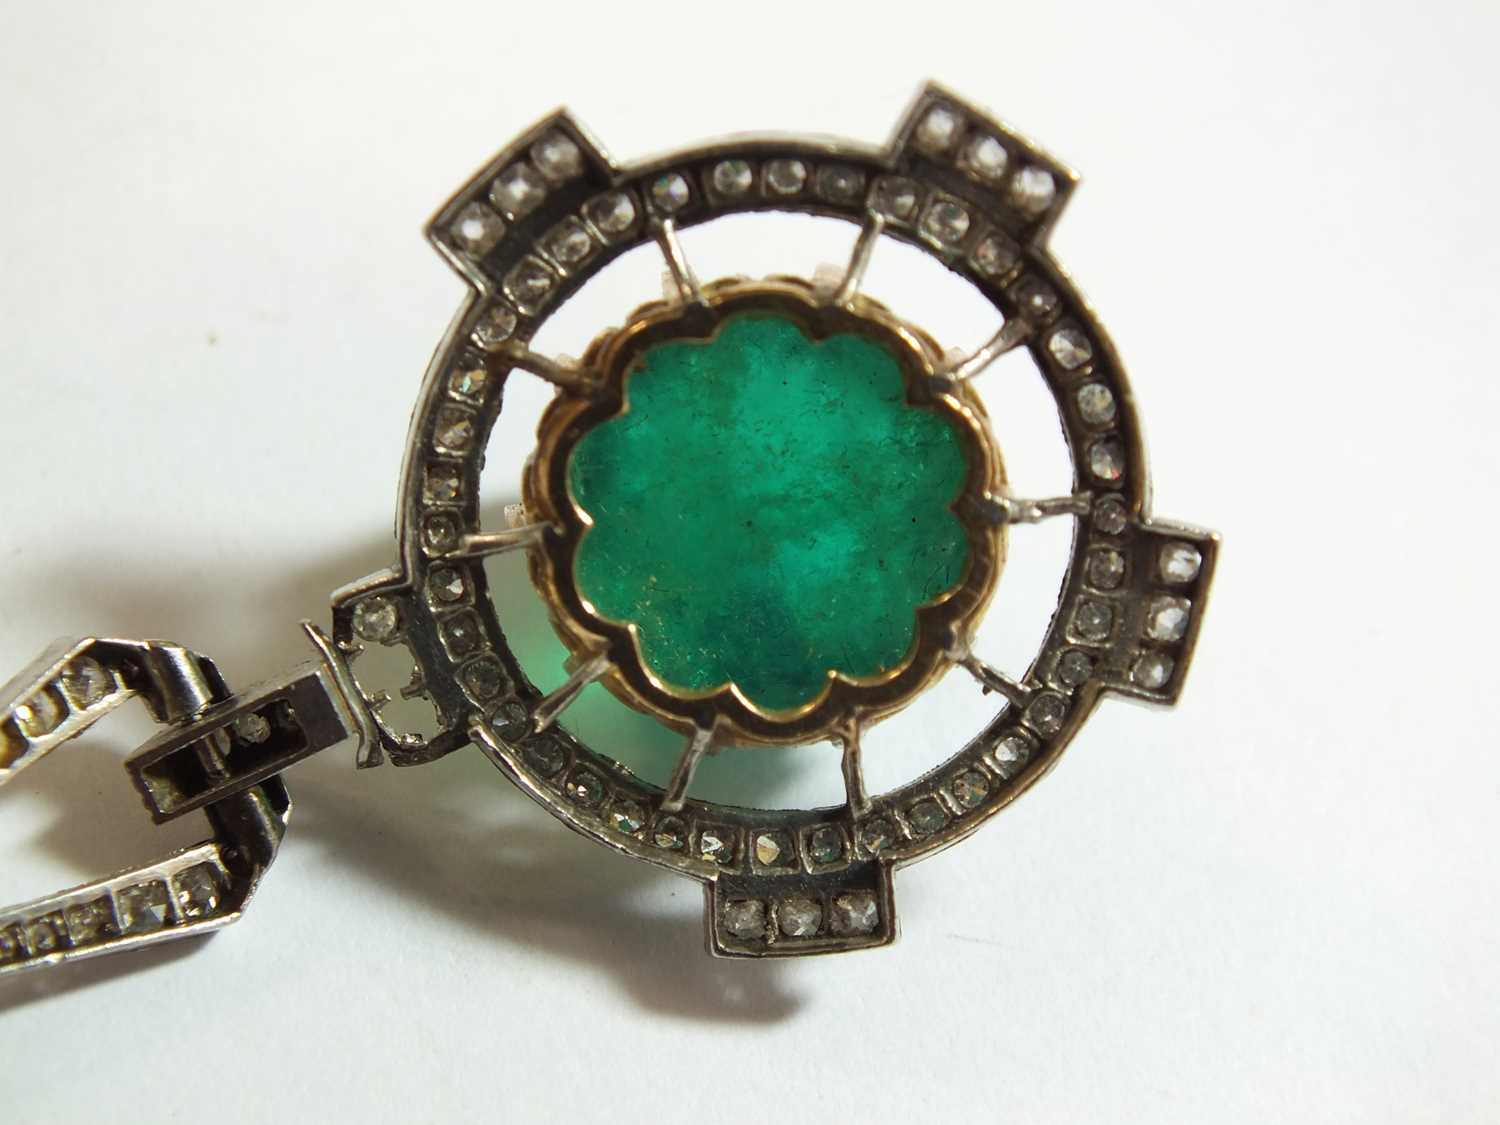 An Art Deco emerald and diamond pendant on chain - Image 6 of 14